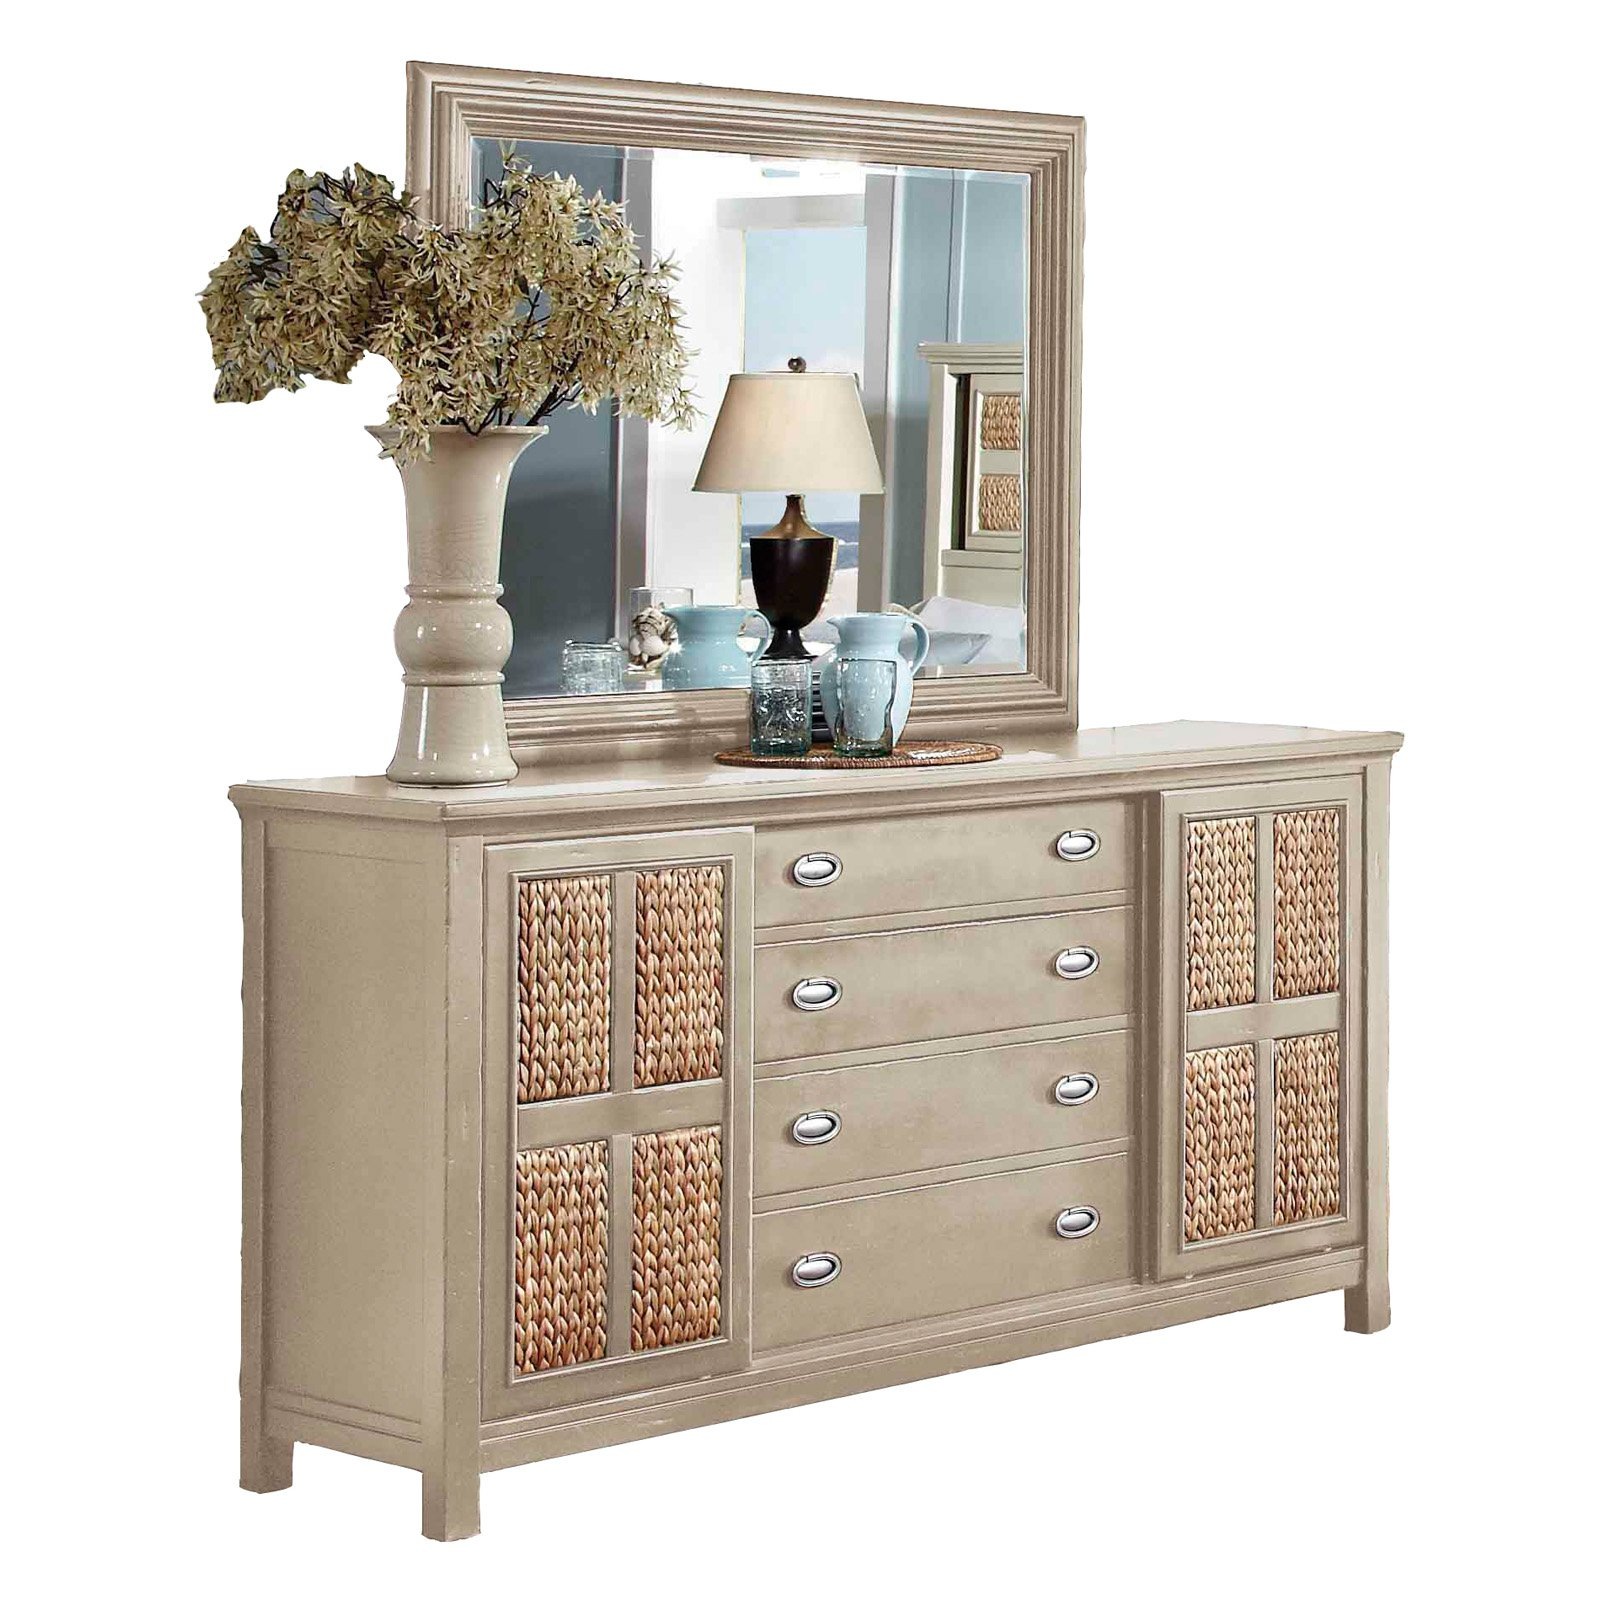 Oasis Home Pacifica 4 Drawer Dresser and Mirror